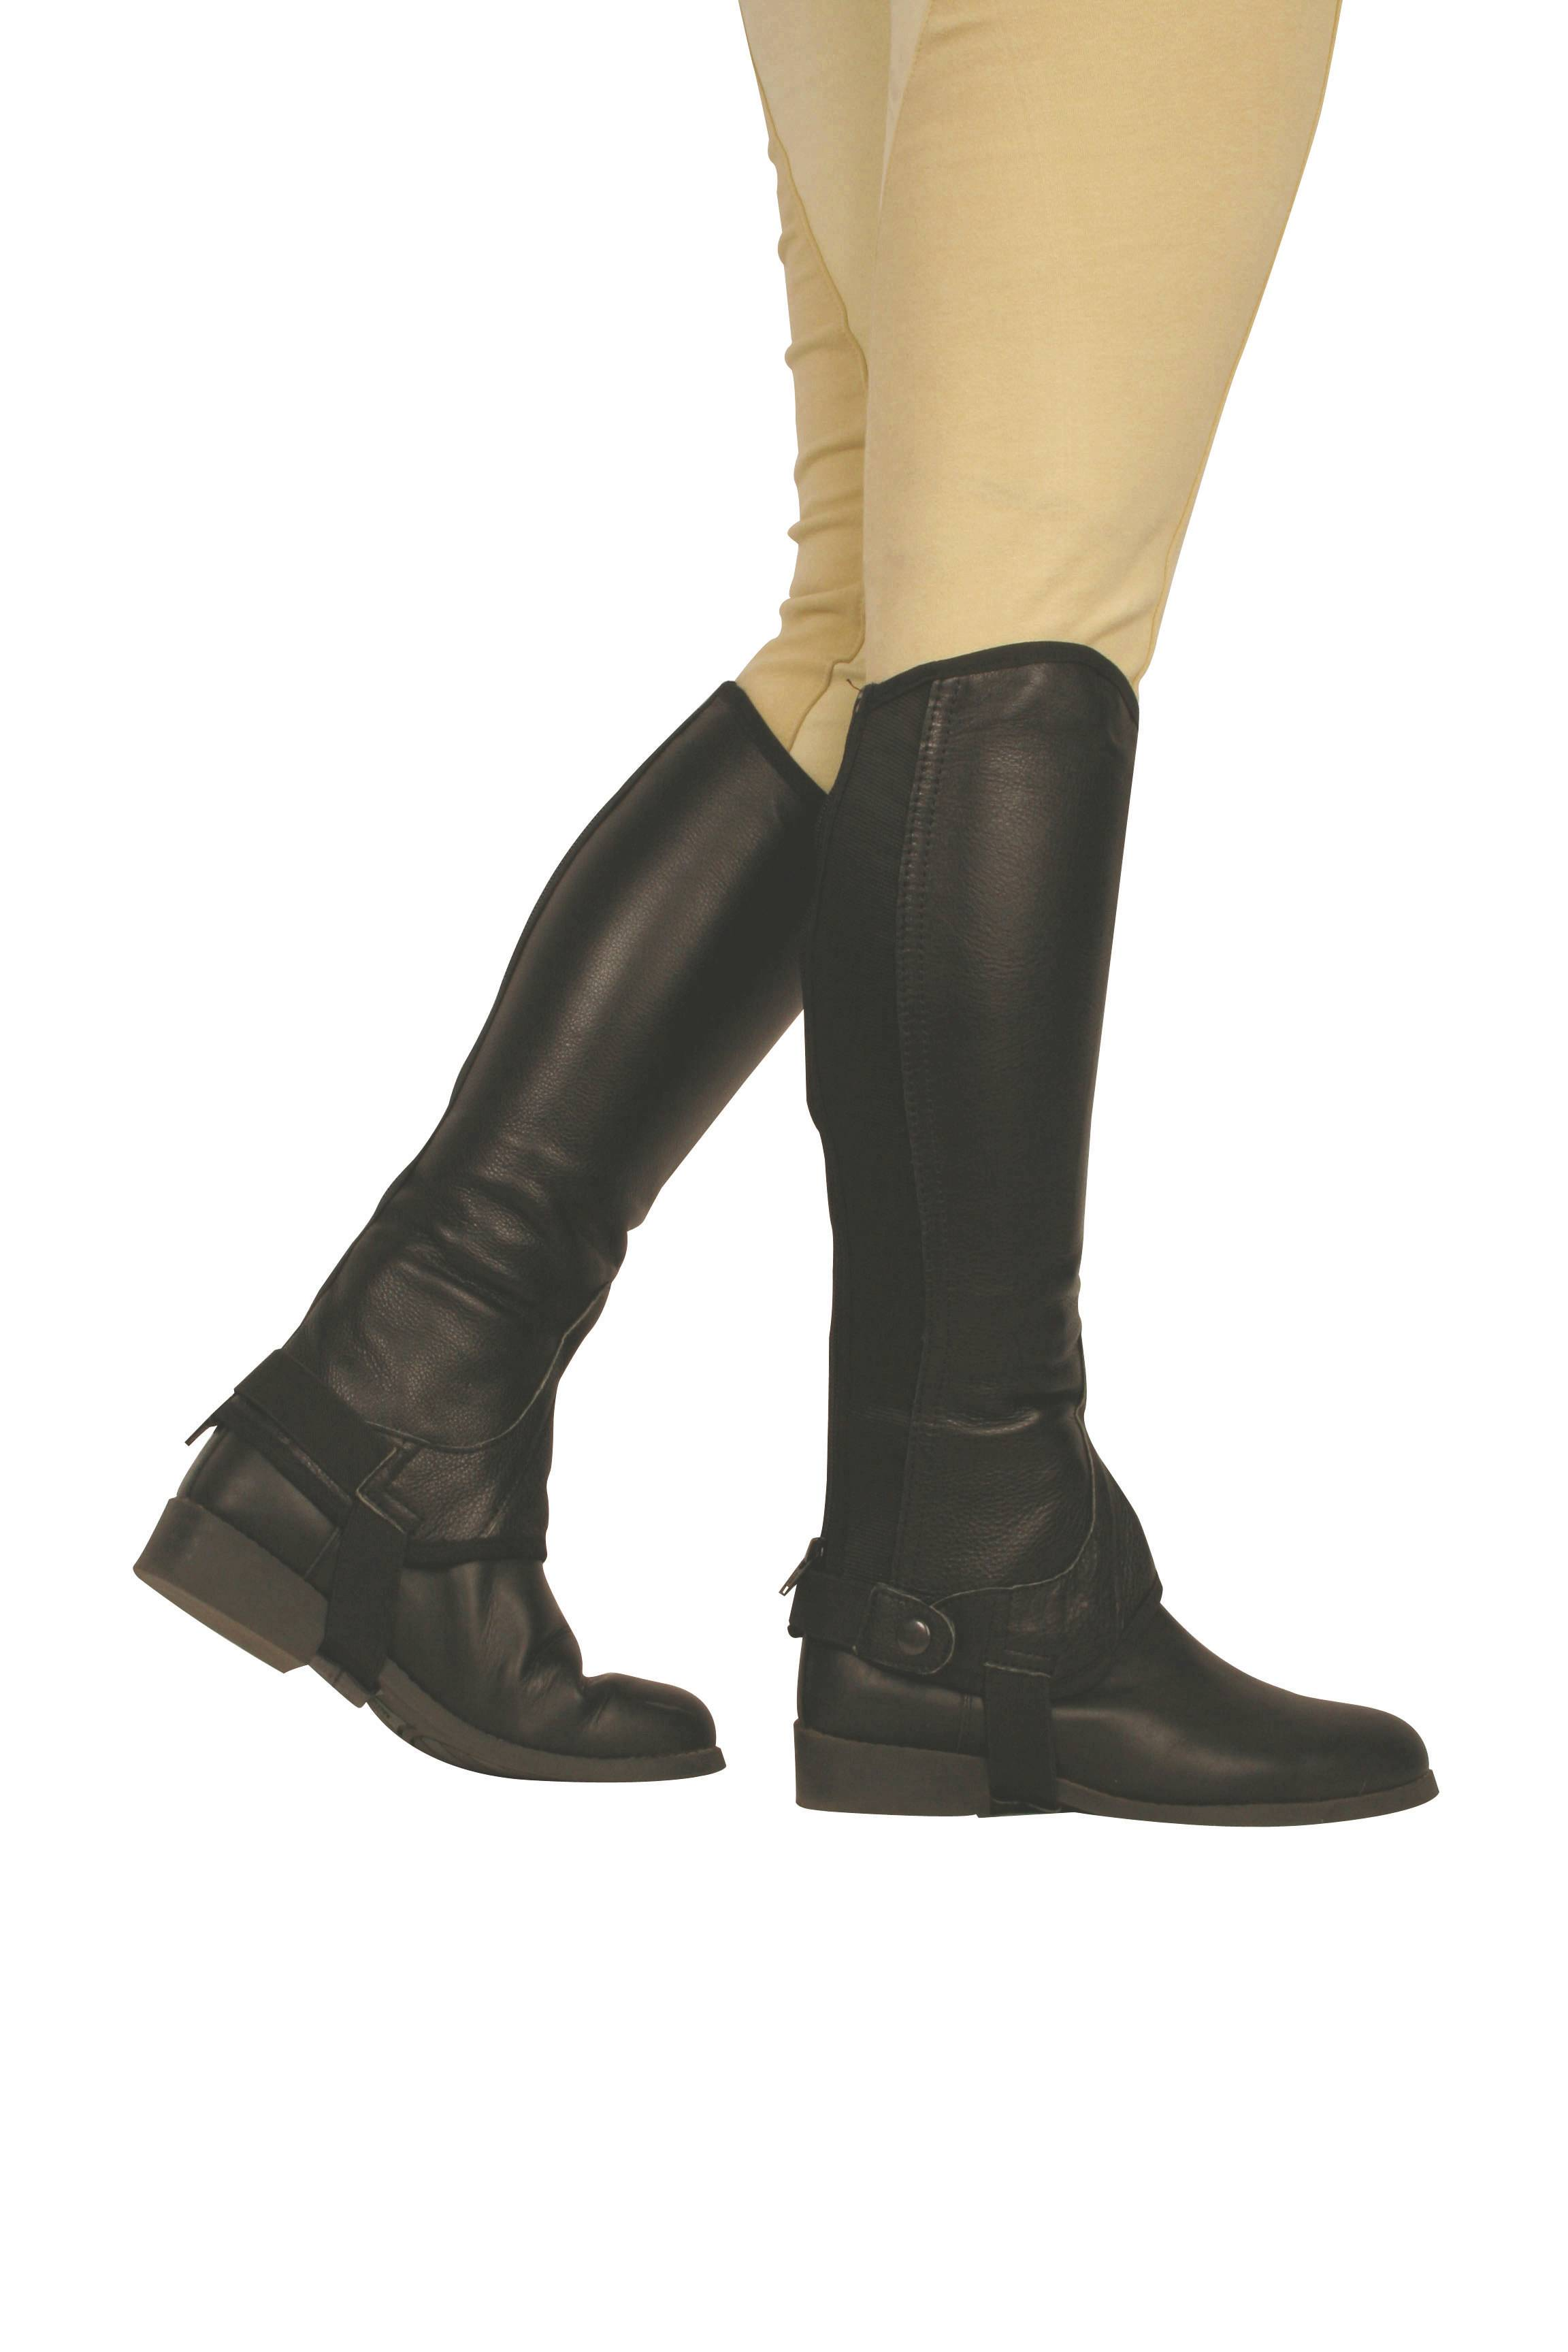 Dublin Flexi Leather II Half Chaps